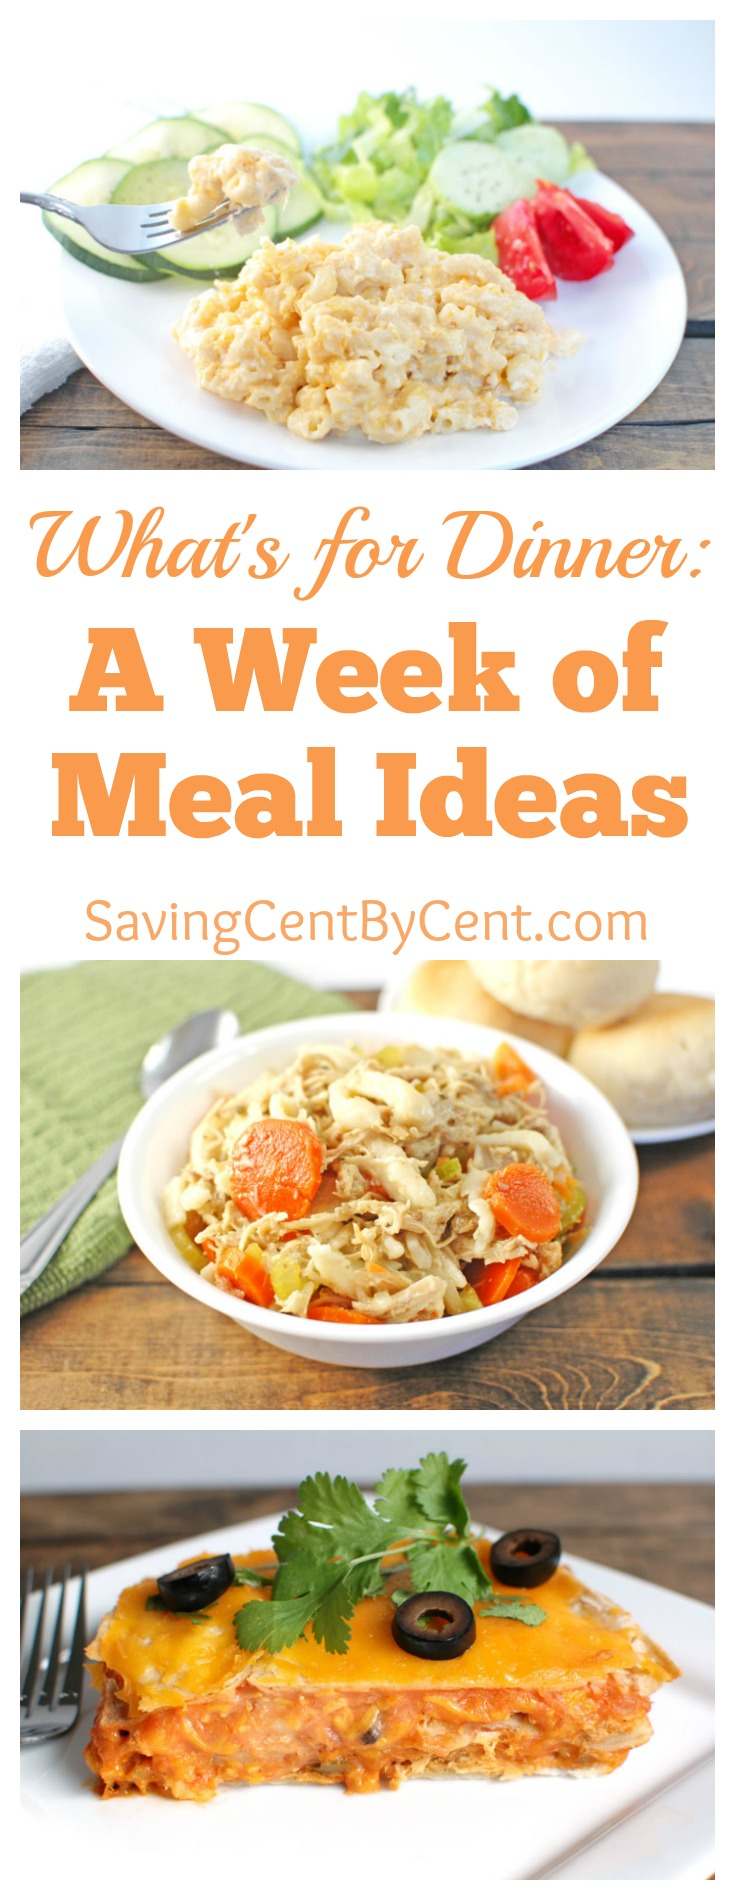 A week of meal ideas what's for dinner